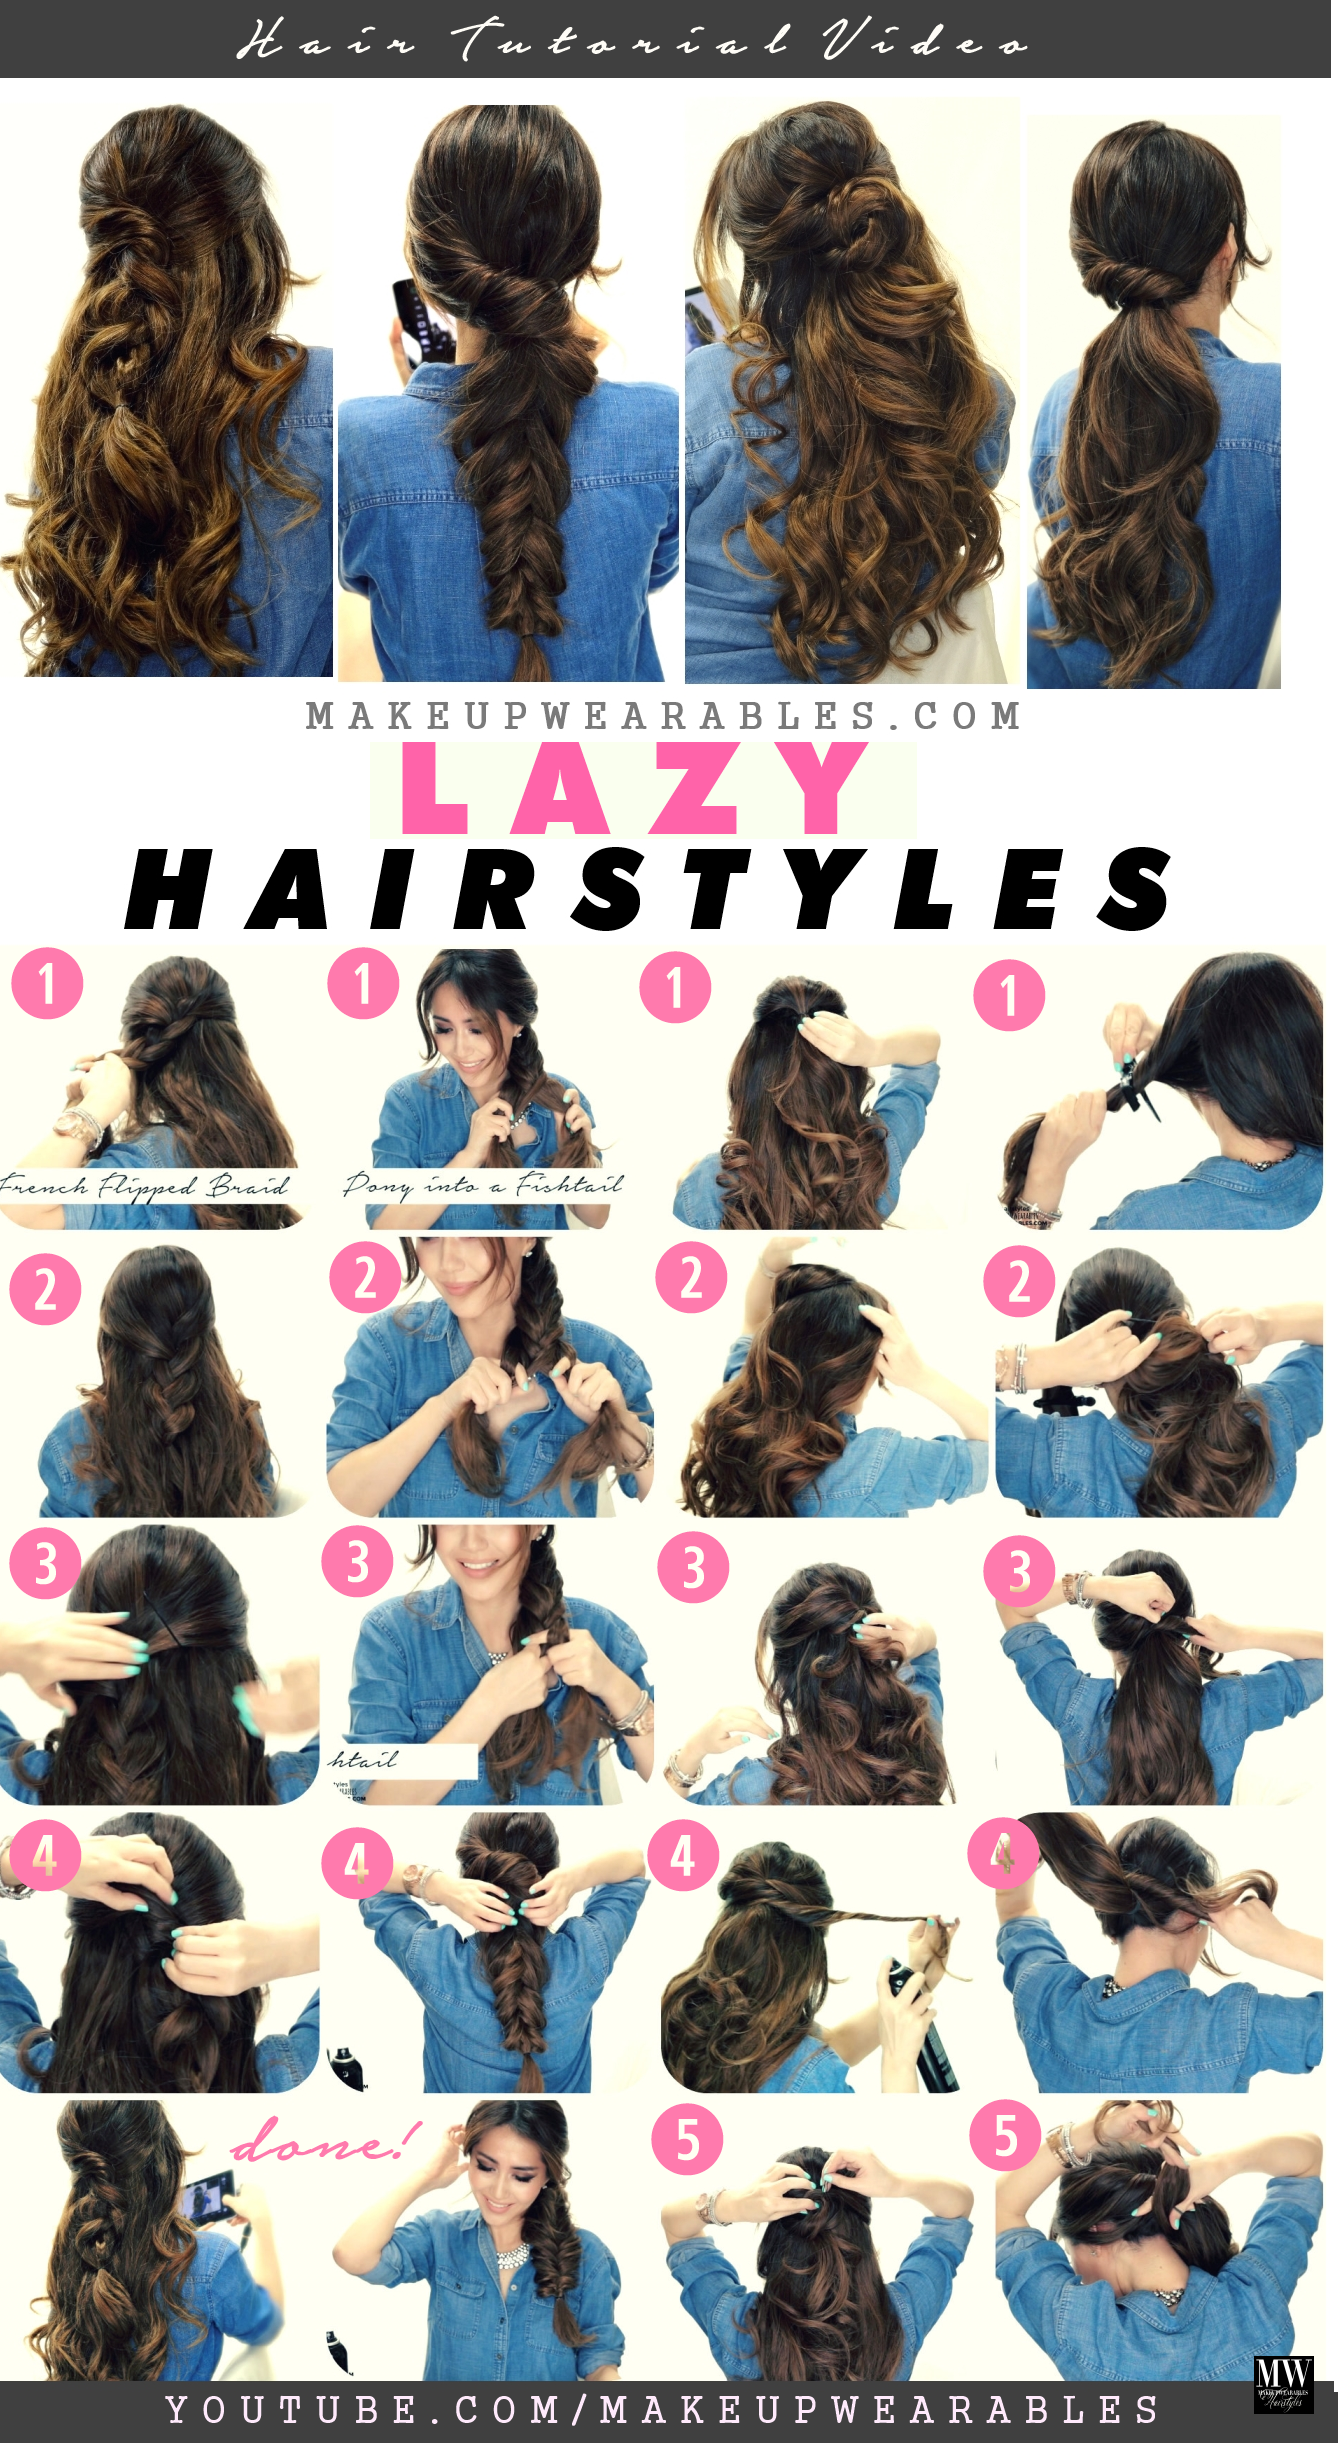 4 Easy Lazy Hairstyles 5 Minute Everyday Hair Tutorial Video Lazy Hairstyles Long Hair Styles Hair Styles